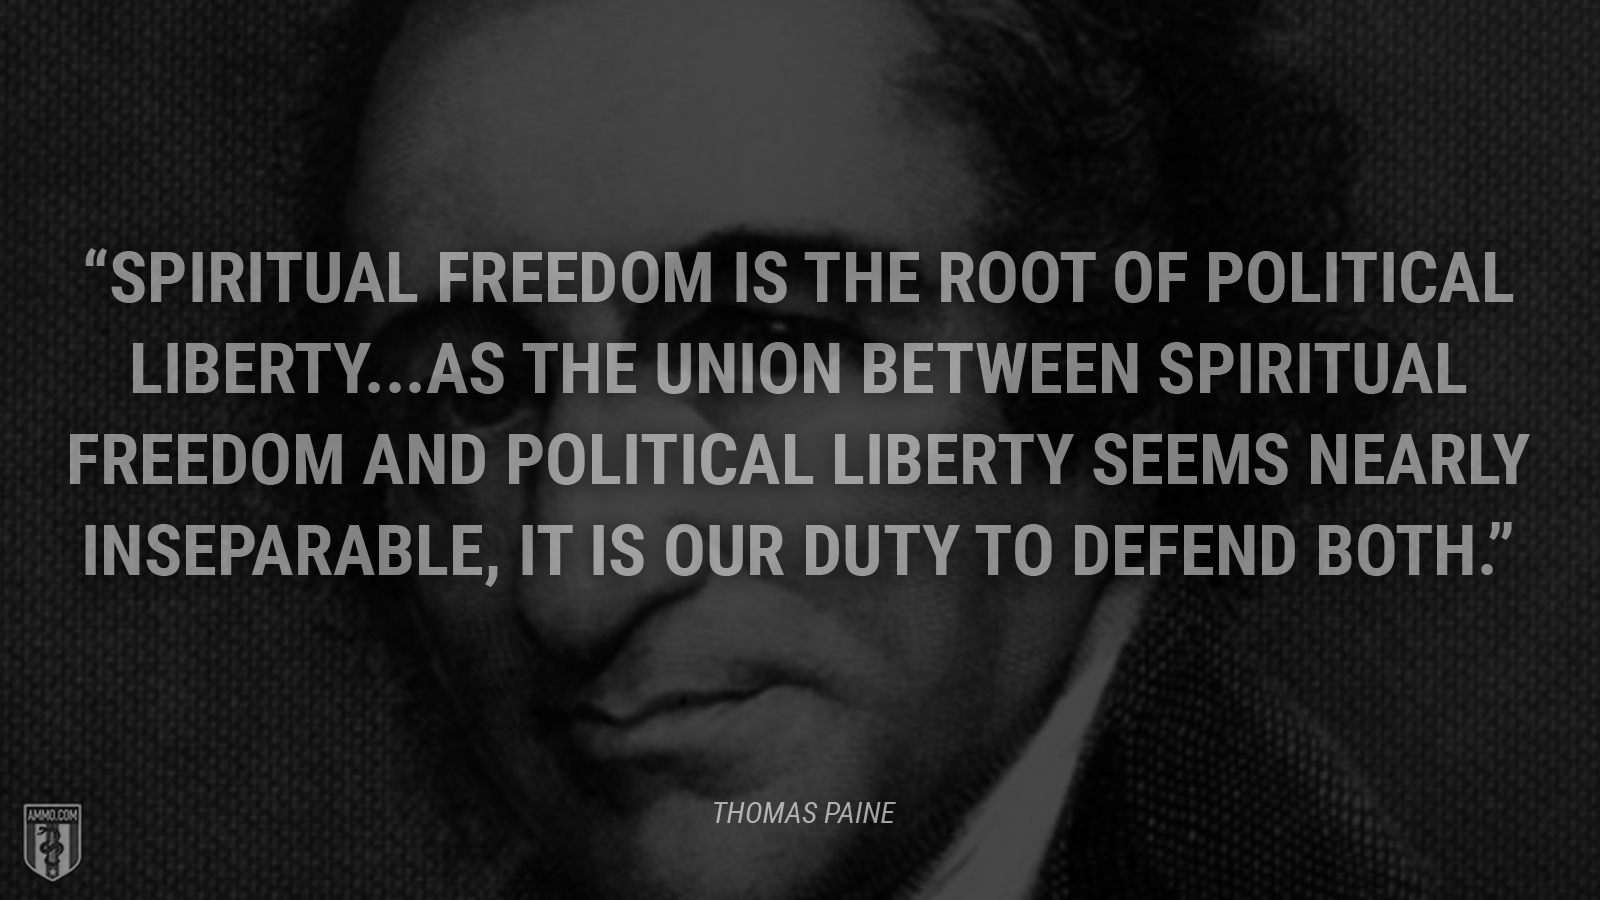 """Spiritual freedom is the root of political liberty. … As the union between spiritual freedom and political liberty seems nearly inseparable, it is our duty to defend both."" - Thomas Paine"